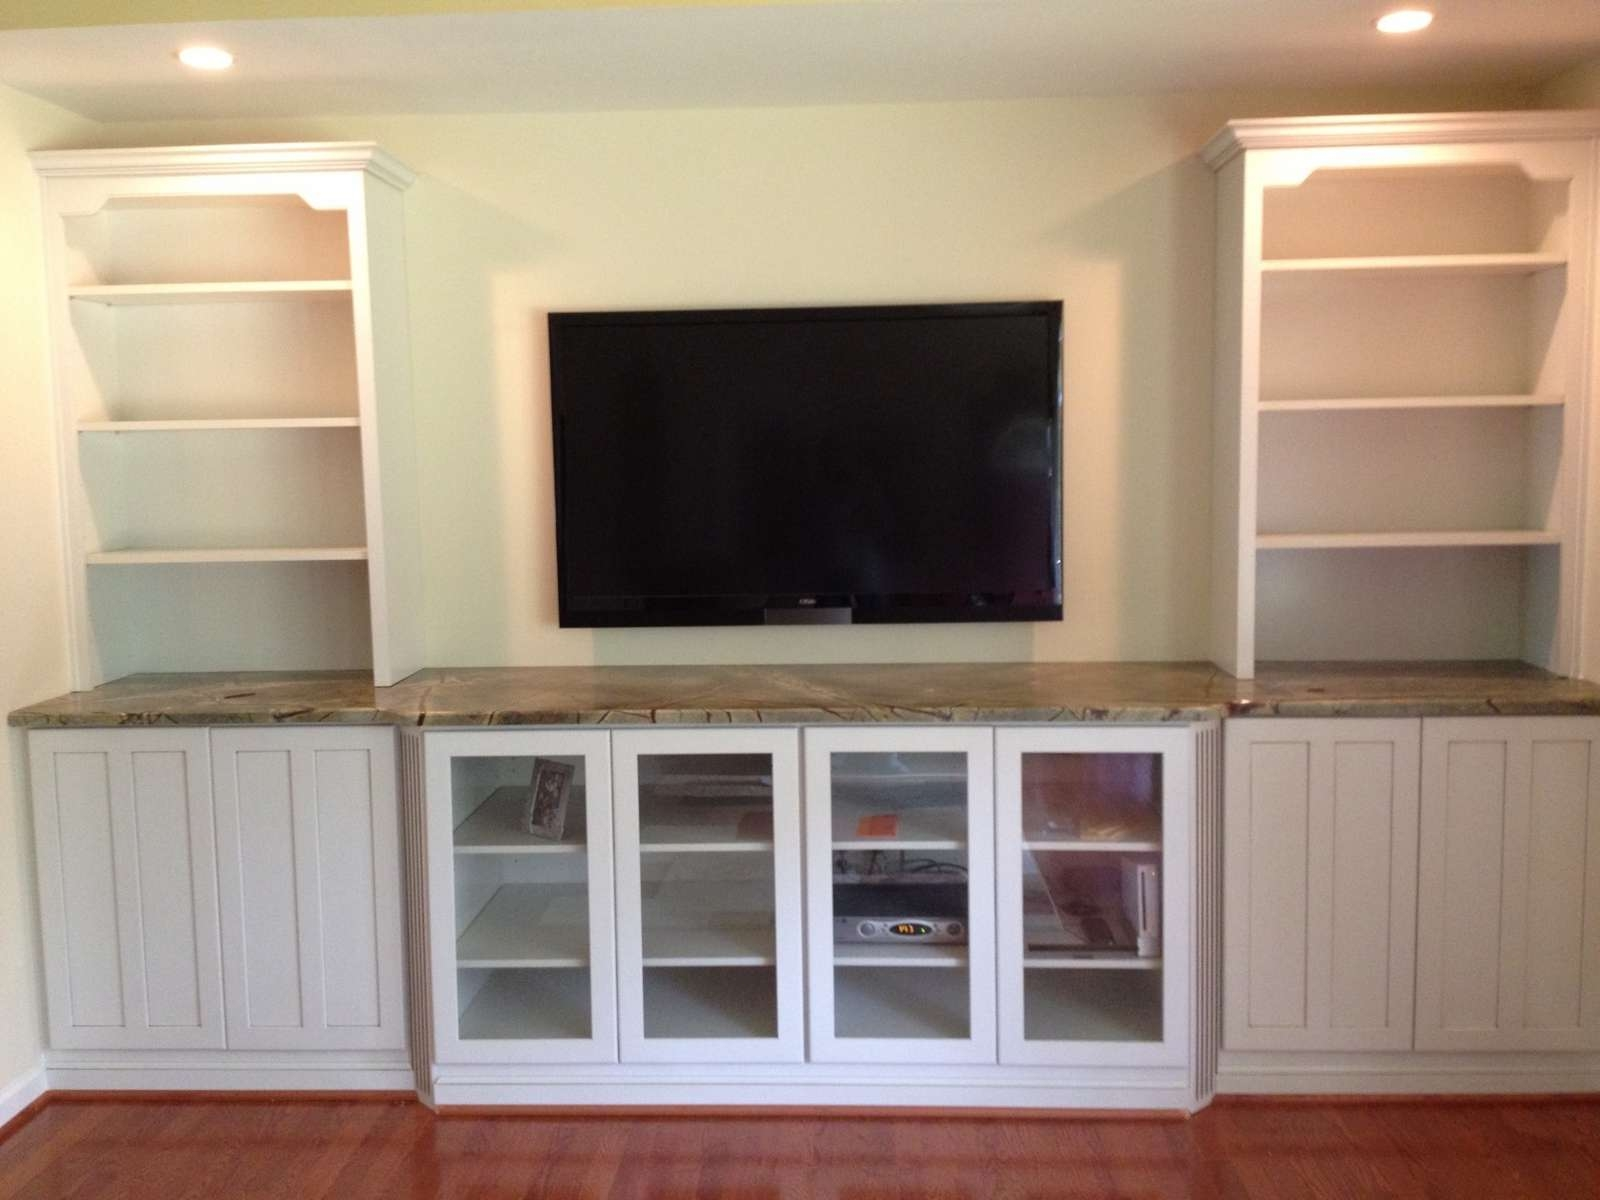 Bedroom : Tv Stand Unit Led Tv Table Wall Cabinets For Living Room Regarding Wall Mounted Tv Cabinets With Doors (View 18 of 20)